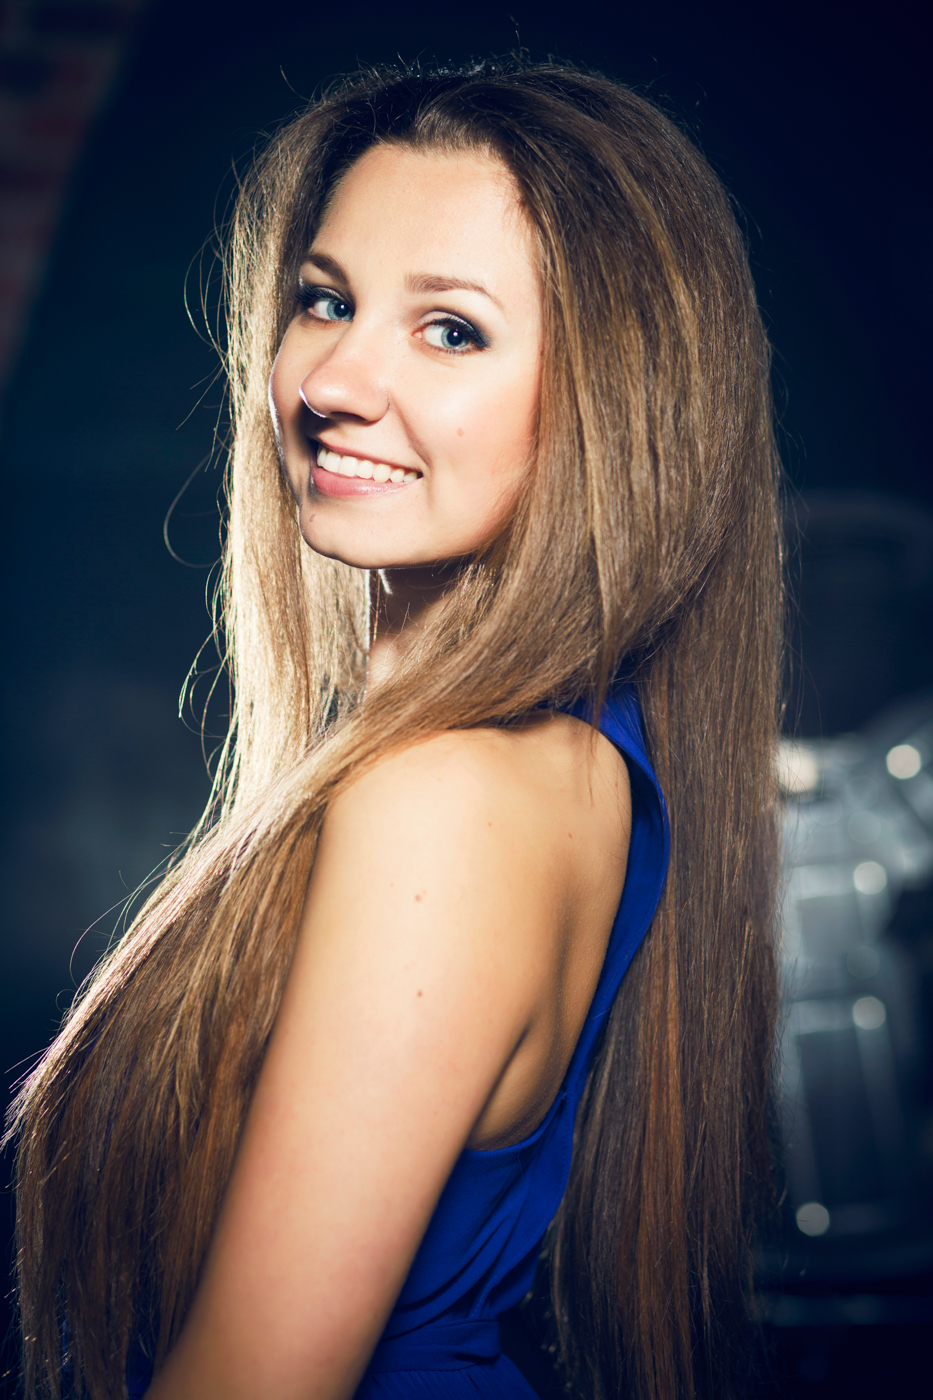 Photo-Shoot-for-a-local-band-Ksenia-Pro-Photography-5